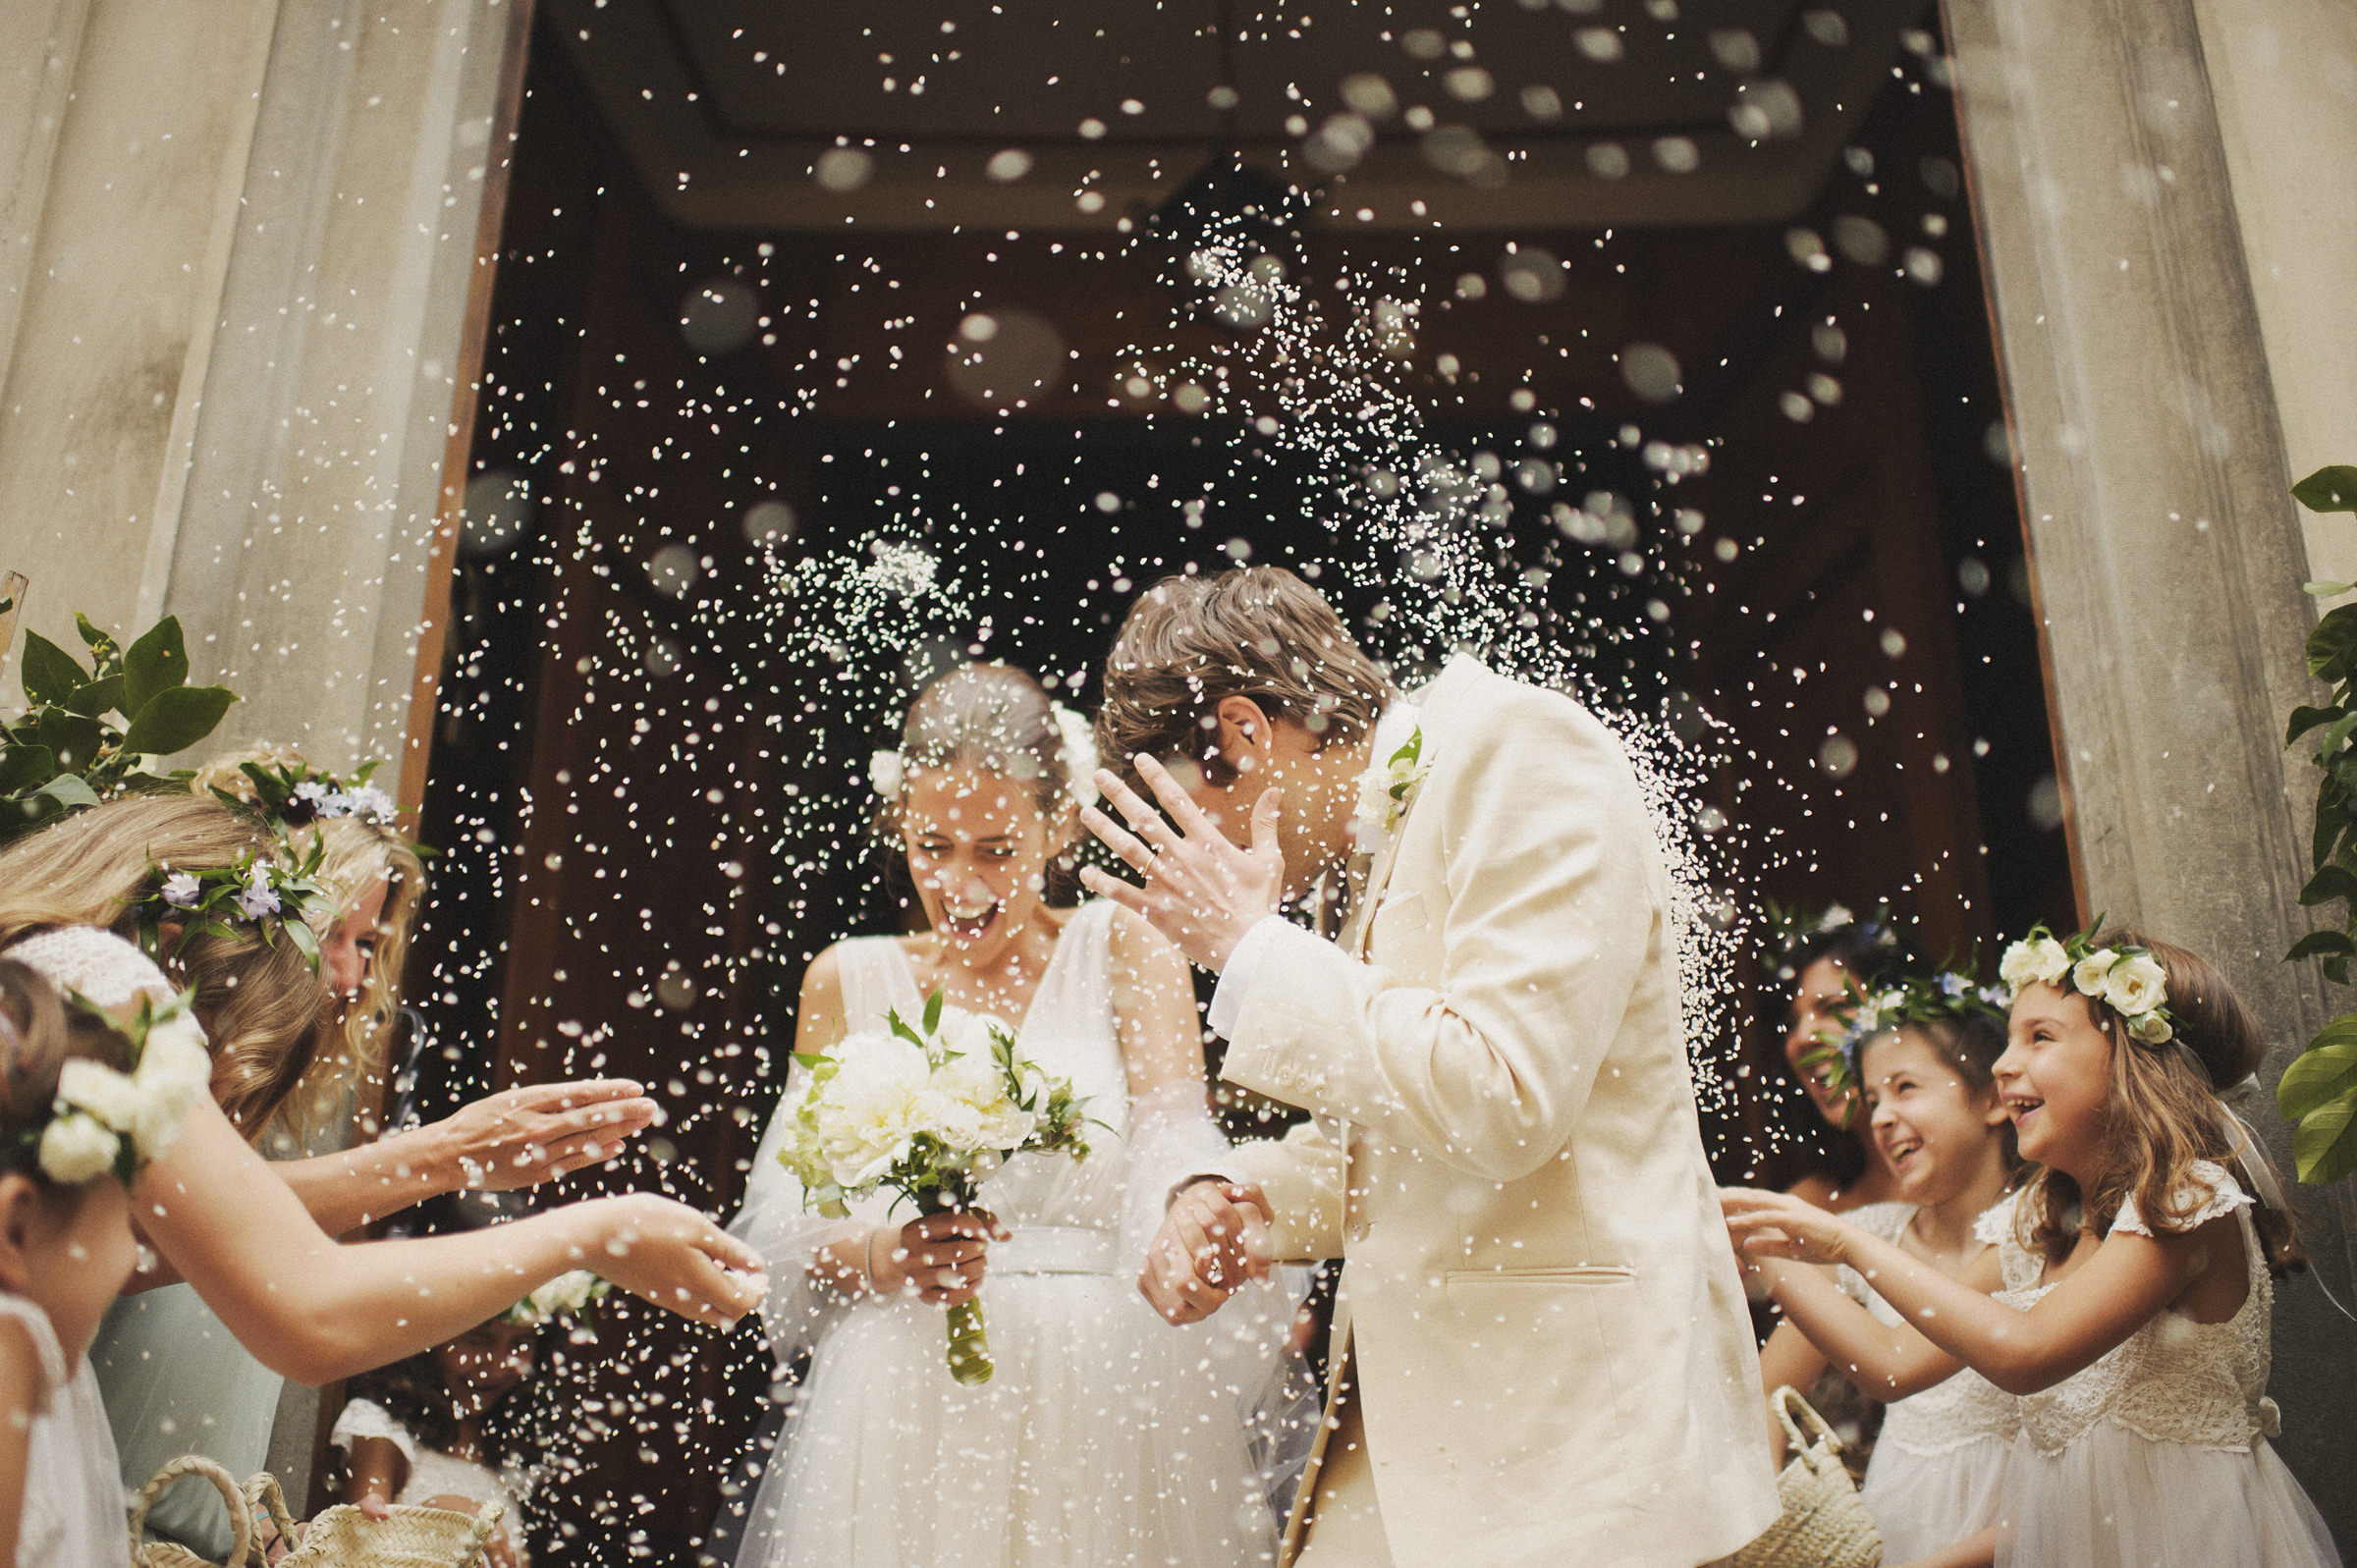 Couple exits church to rice shower - photo by Ed Peers Photography